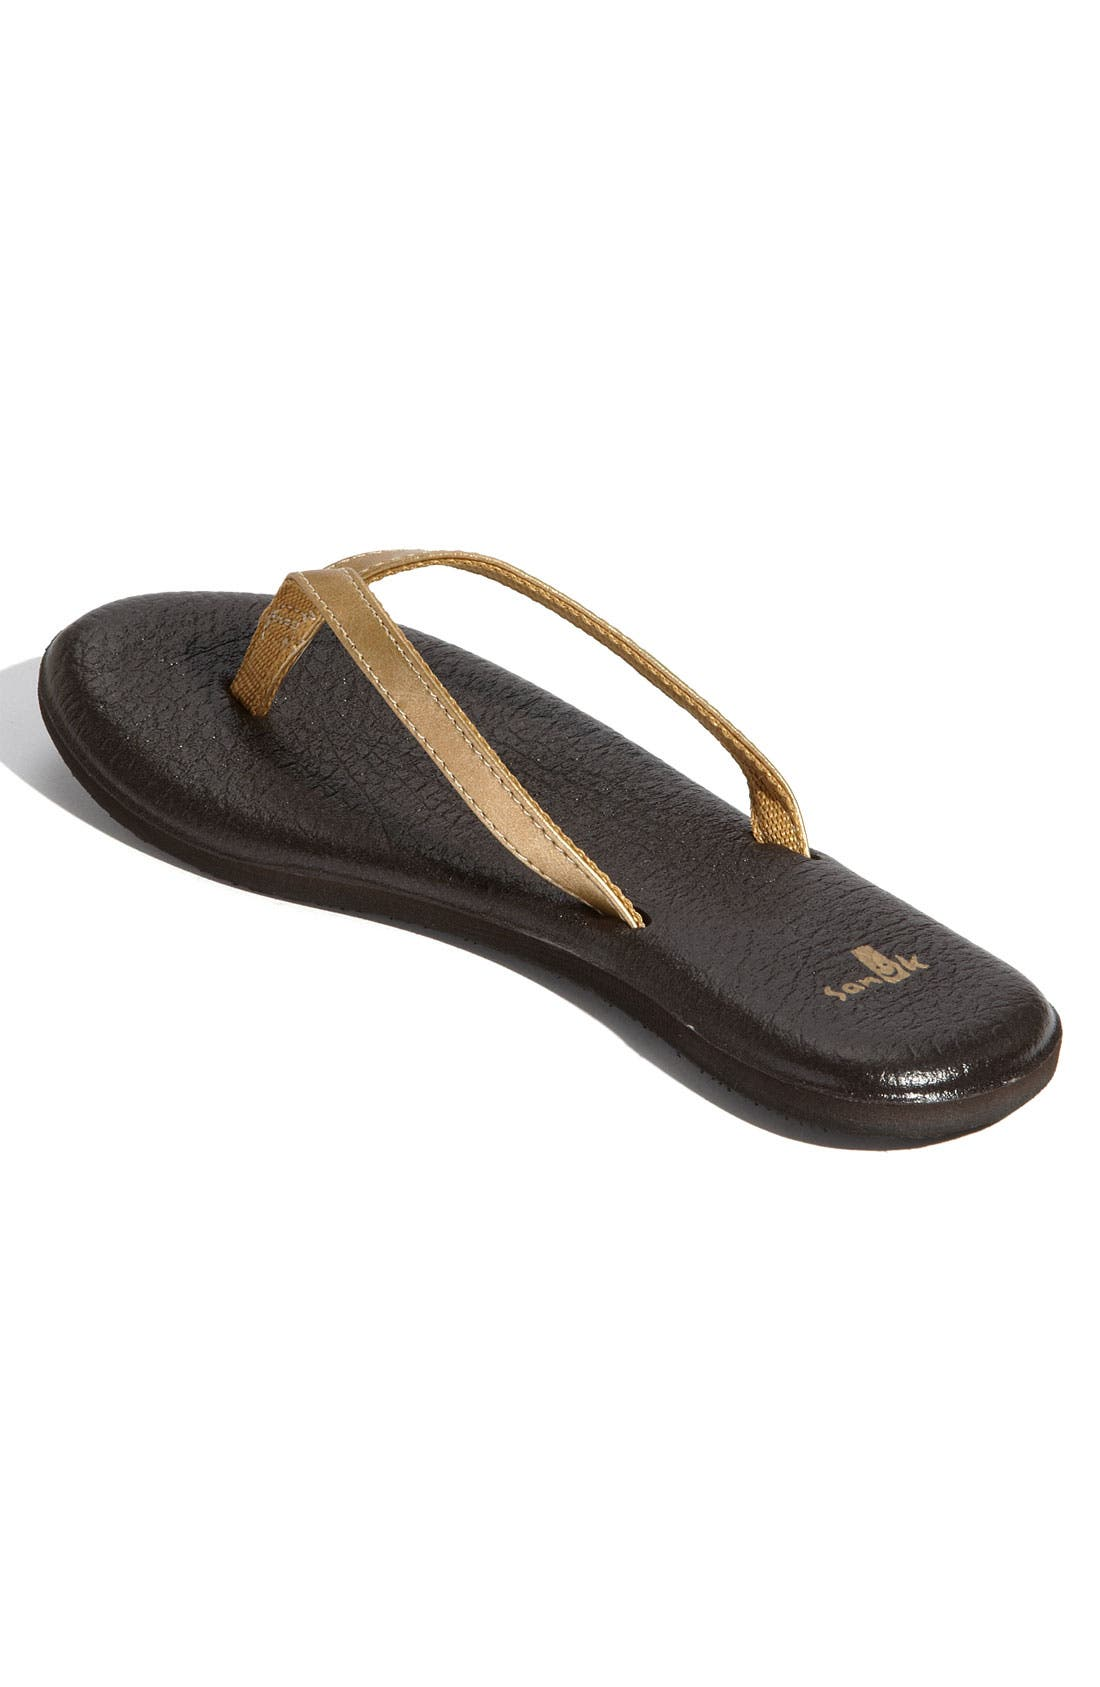 Alternate Image 2  - Sanuk 'Yoga Spree' Flip Flop (Women)